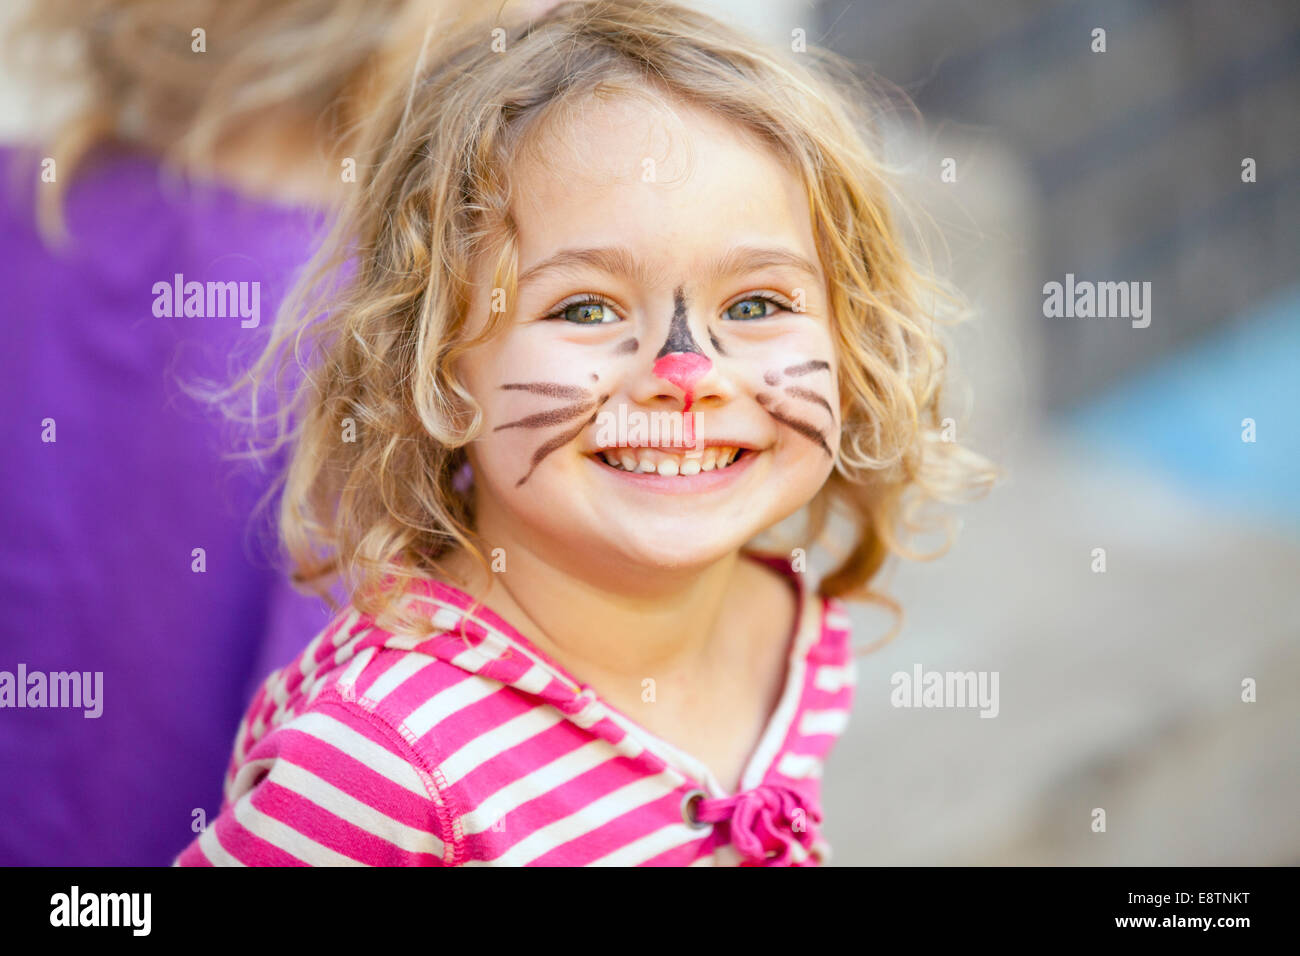 Face paint on young girl at a party. - Stock Image